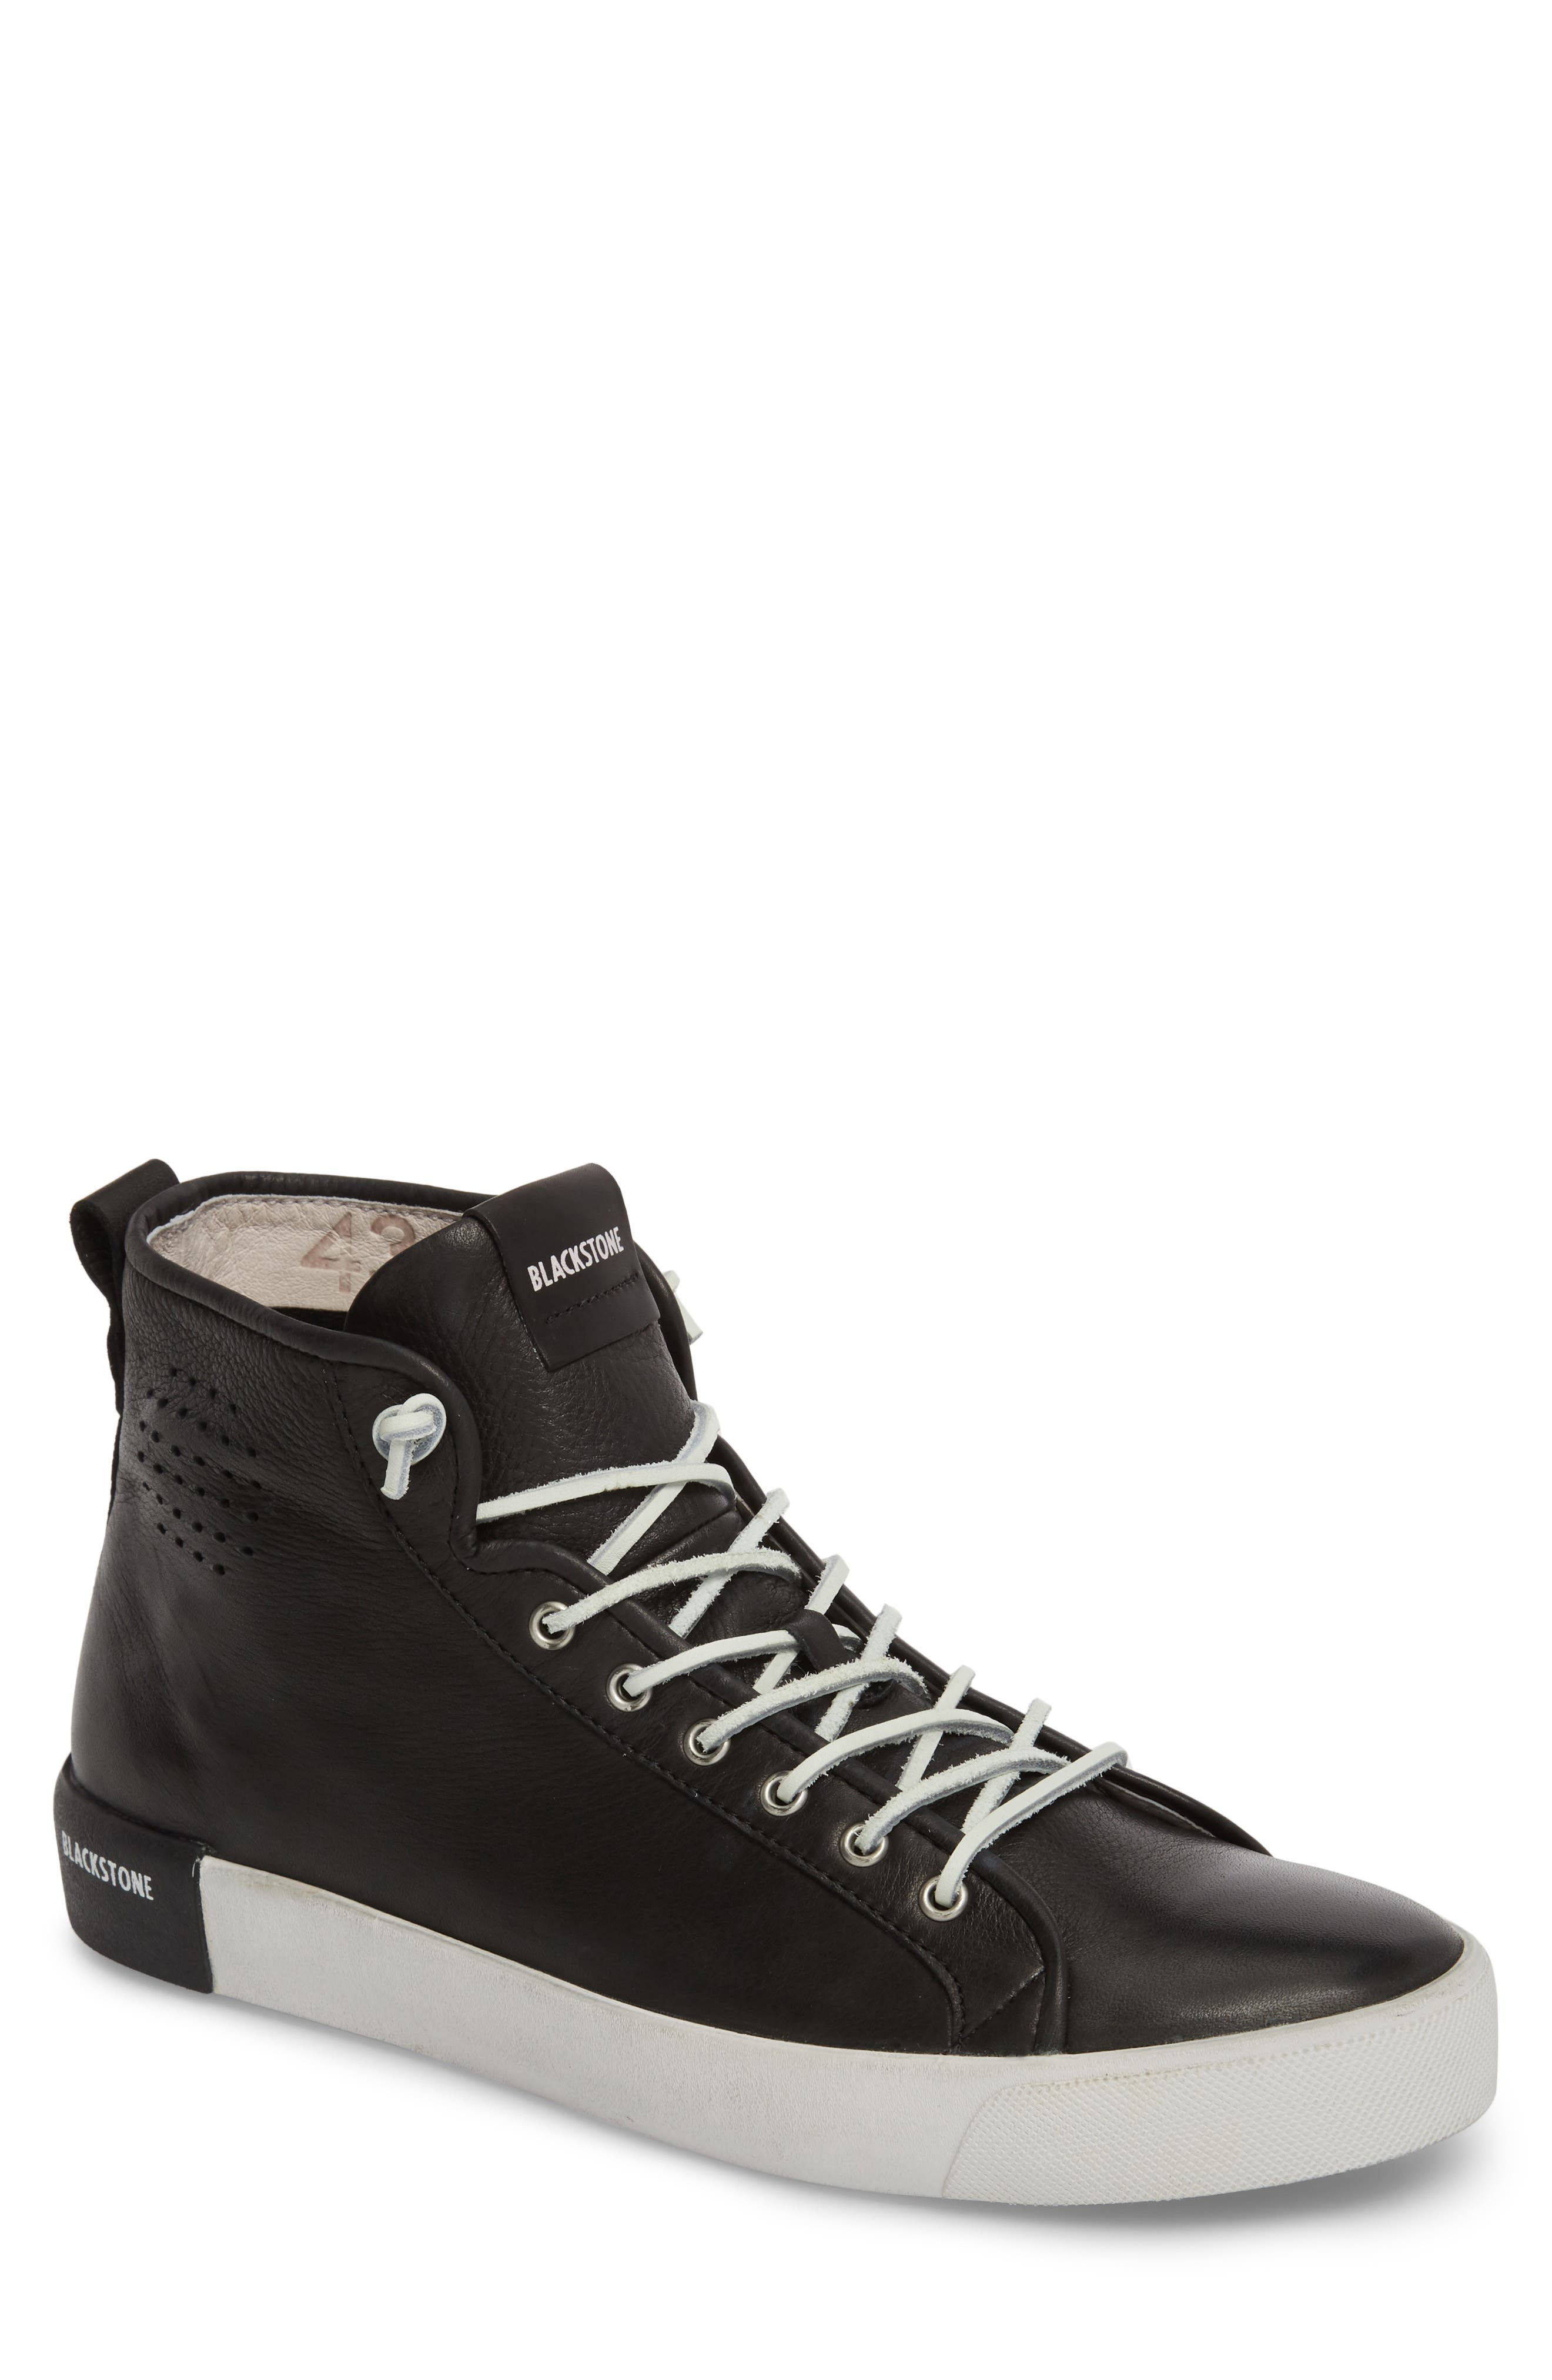 PM43 Slip-On High Top Sneaker,                         Main,                         color, Black Leather